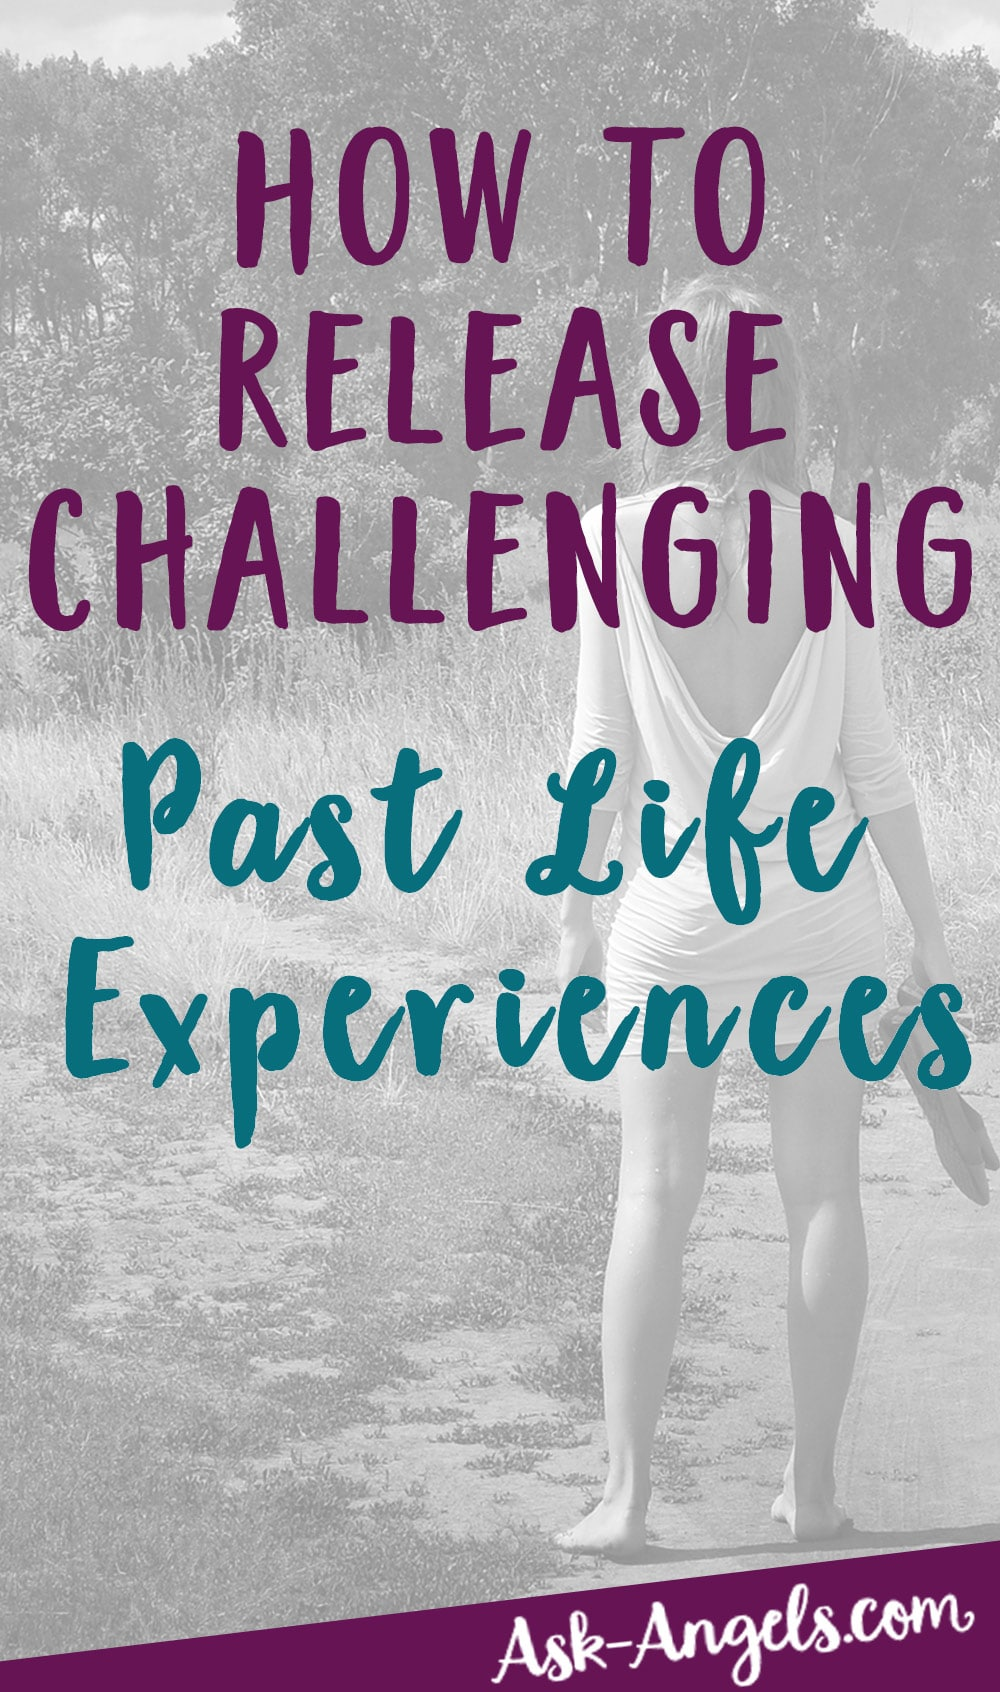 Past Life And Karmic Tarot By Edain Mccoy: How To Release Past Life Experiences